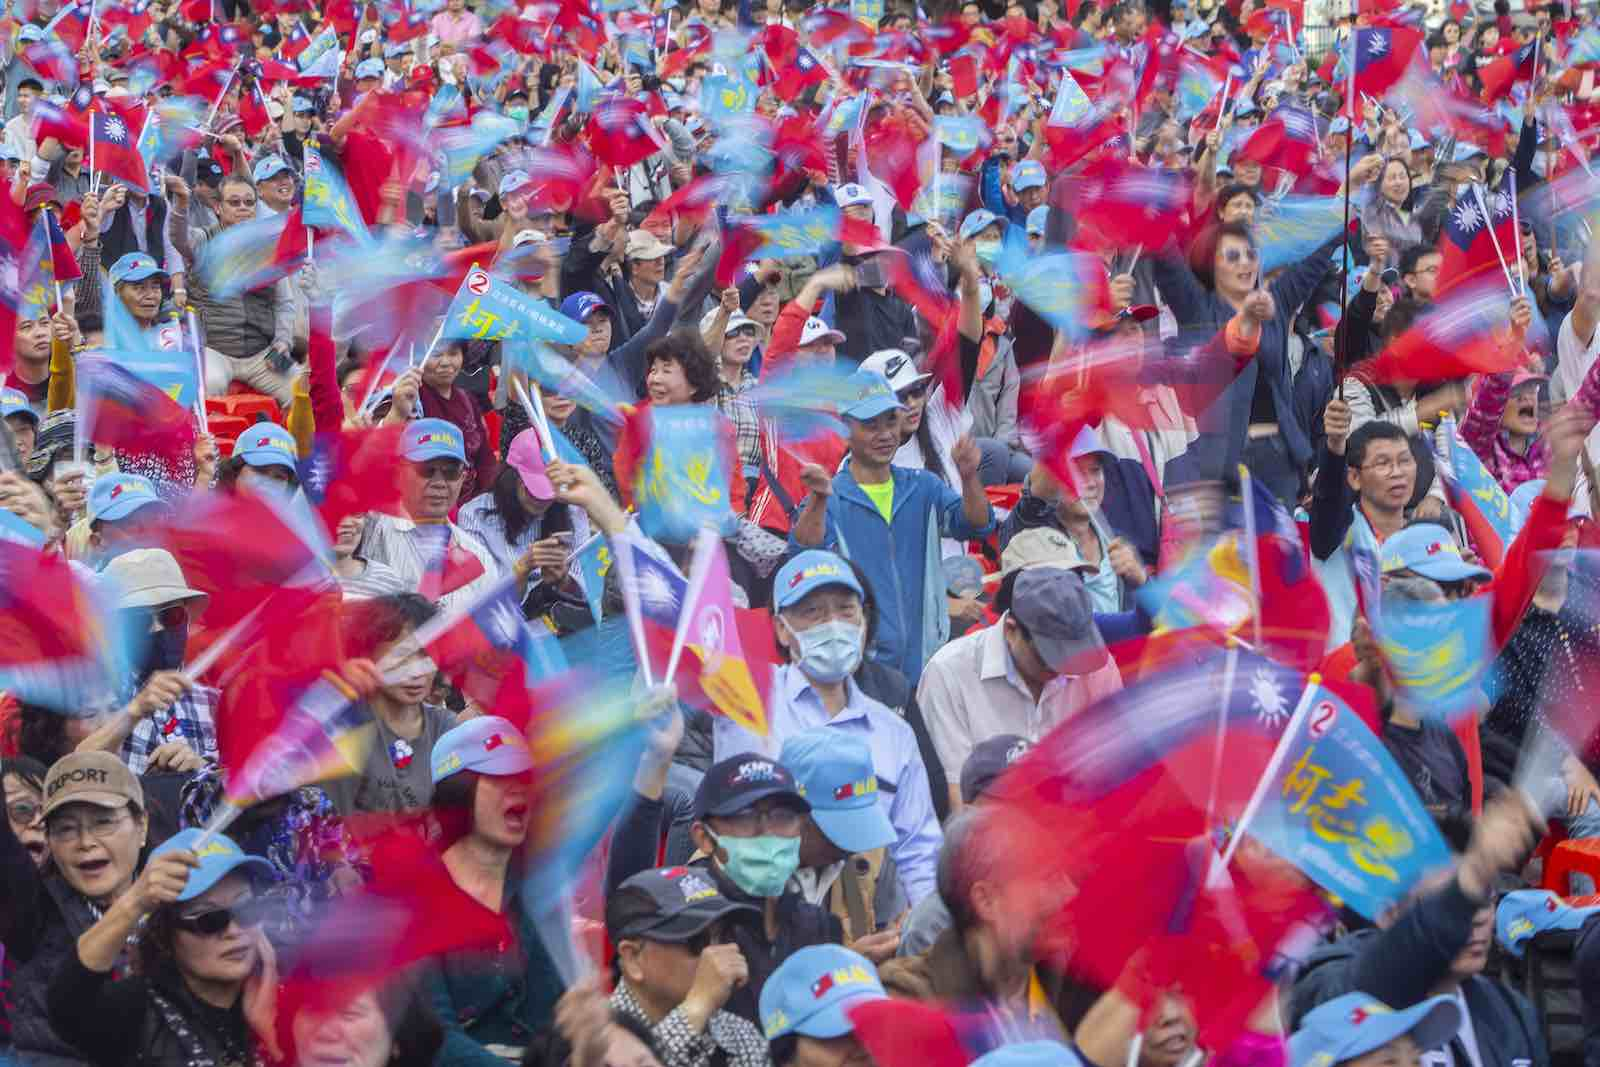 Supporters of Han Kuo-yu, Taiwan's main opposition presidential candidate, at a campaign rally in Taipei, 5 January (Photo: Chan Long Hei/SOPA Images/LightRocket via Getty)